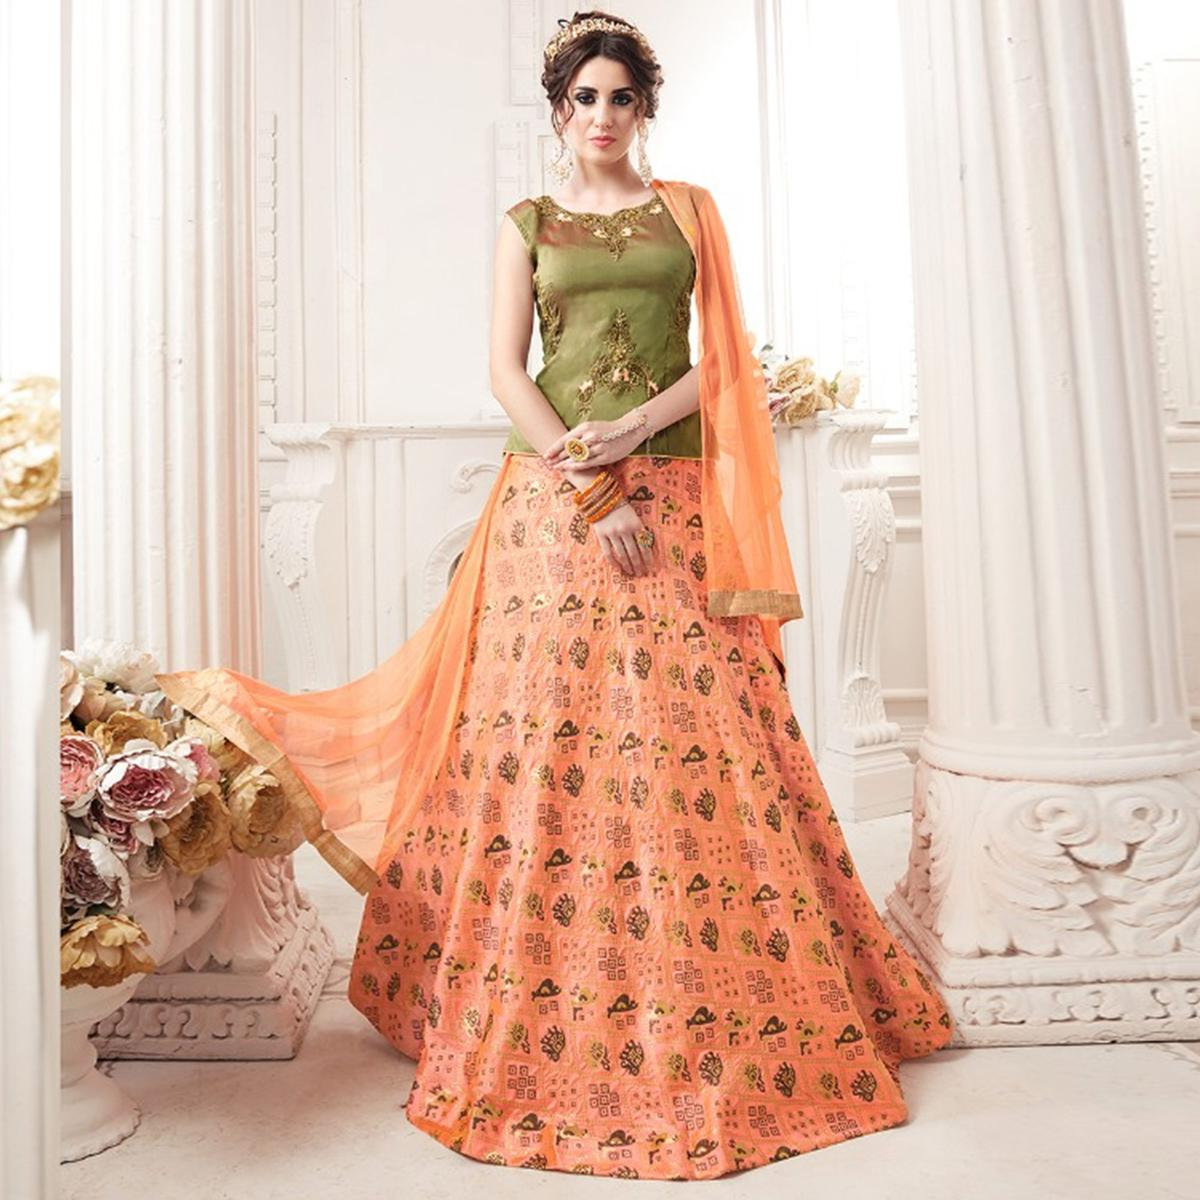 Exceptional Green-Peach Colored Partywear Embroidered Jacquard Silk Lehenga Choli